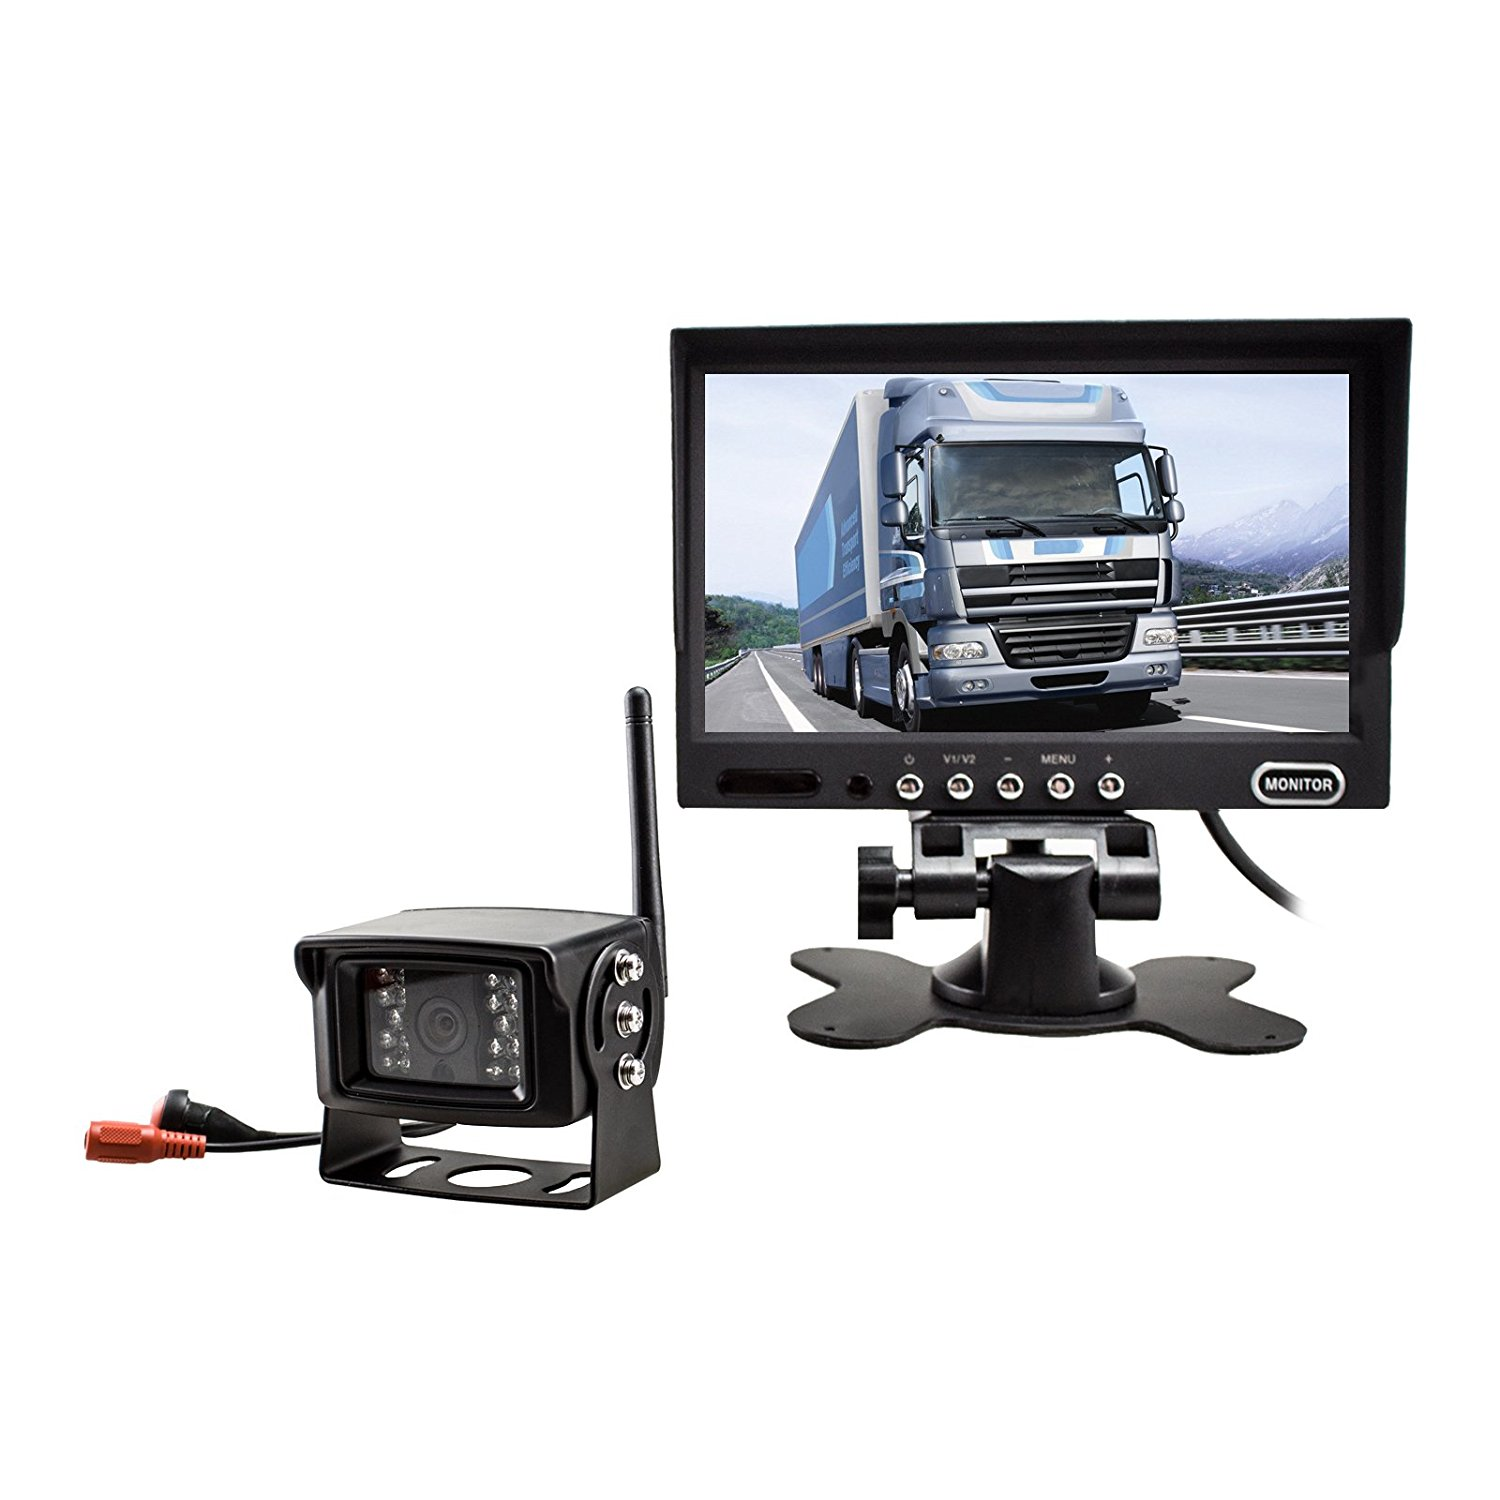 "Auto-Vox 7"" Full-color LCD Digtal Screen Monitor with Wir..."